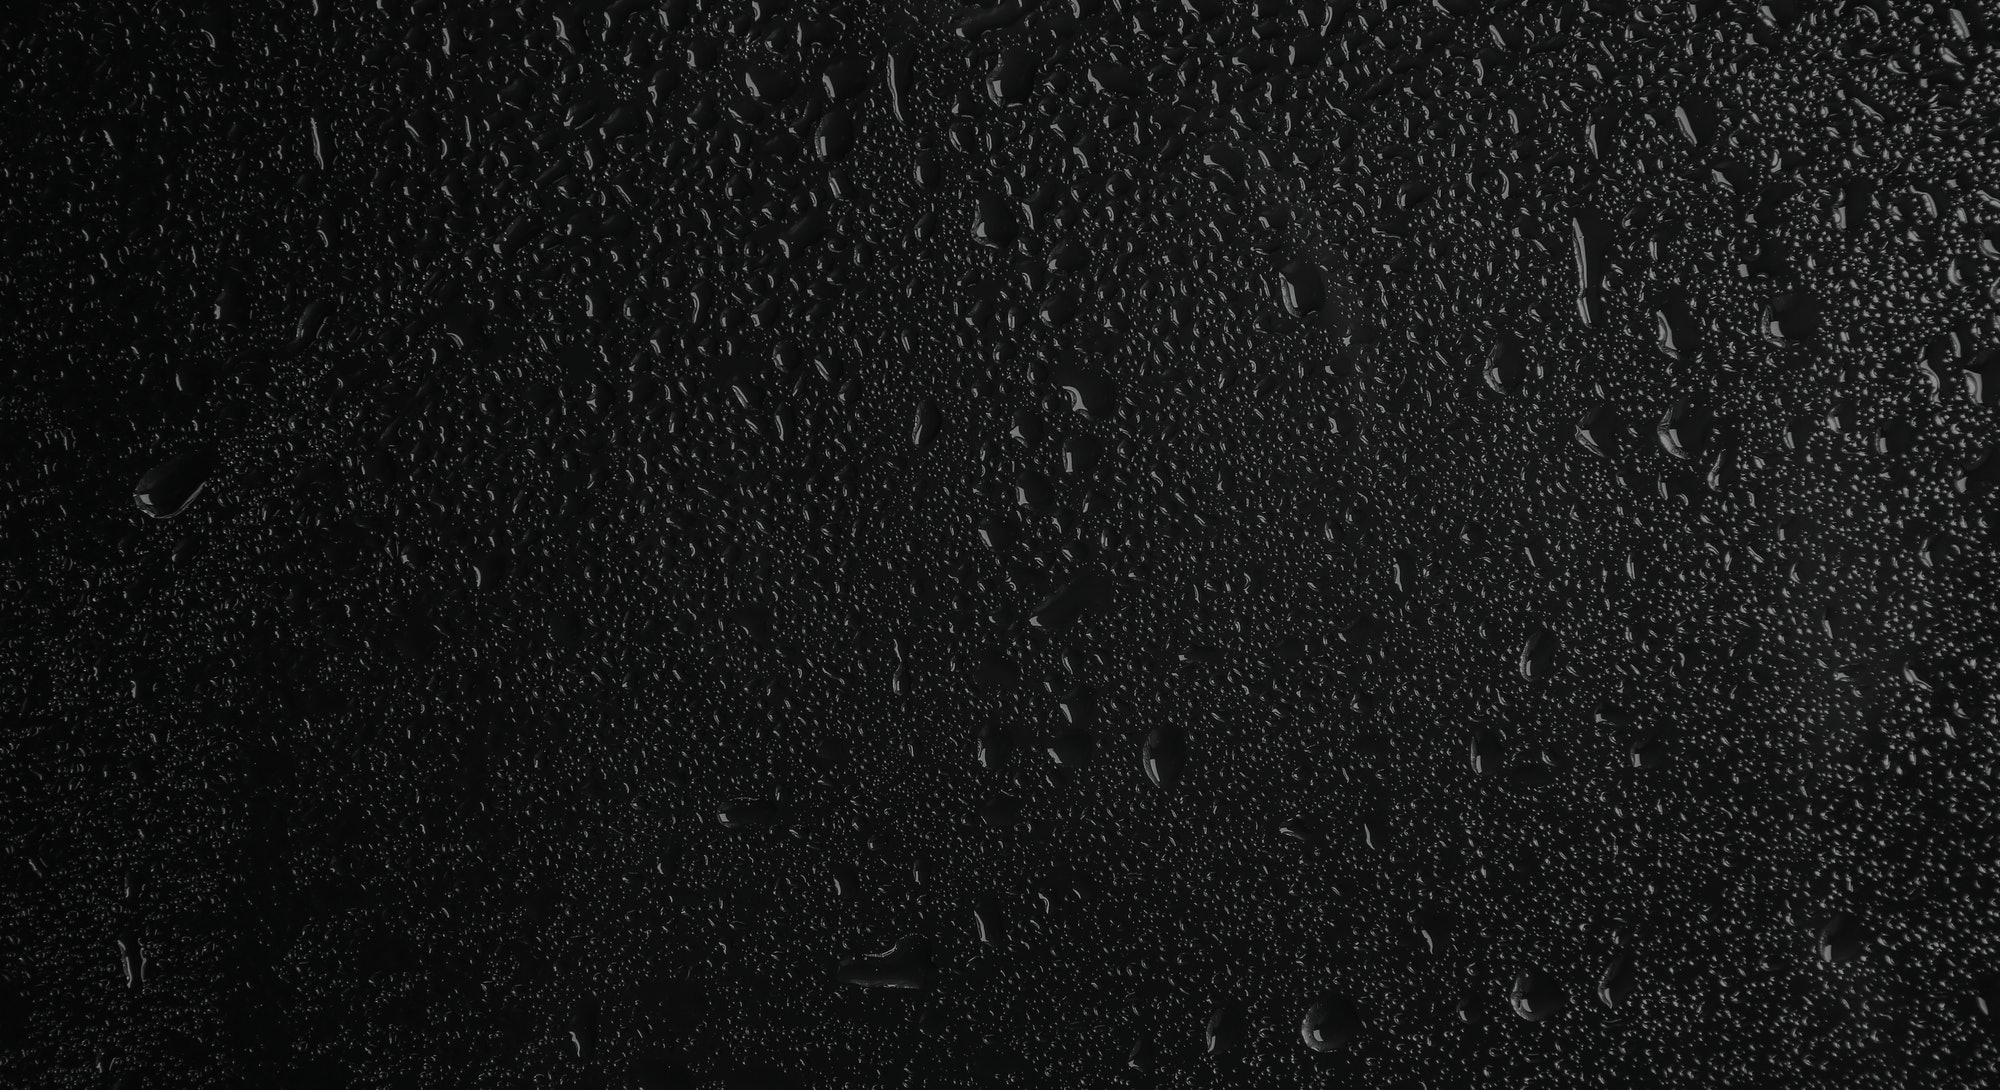 Glass with rain drops against dark background